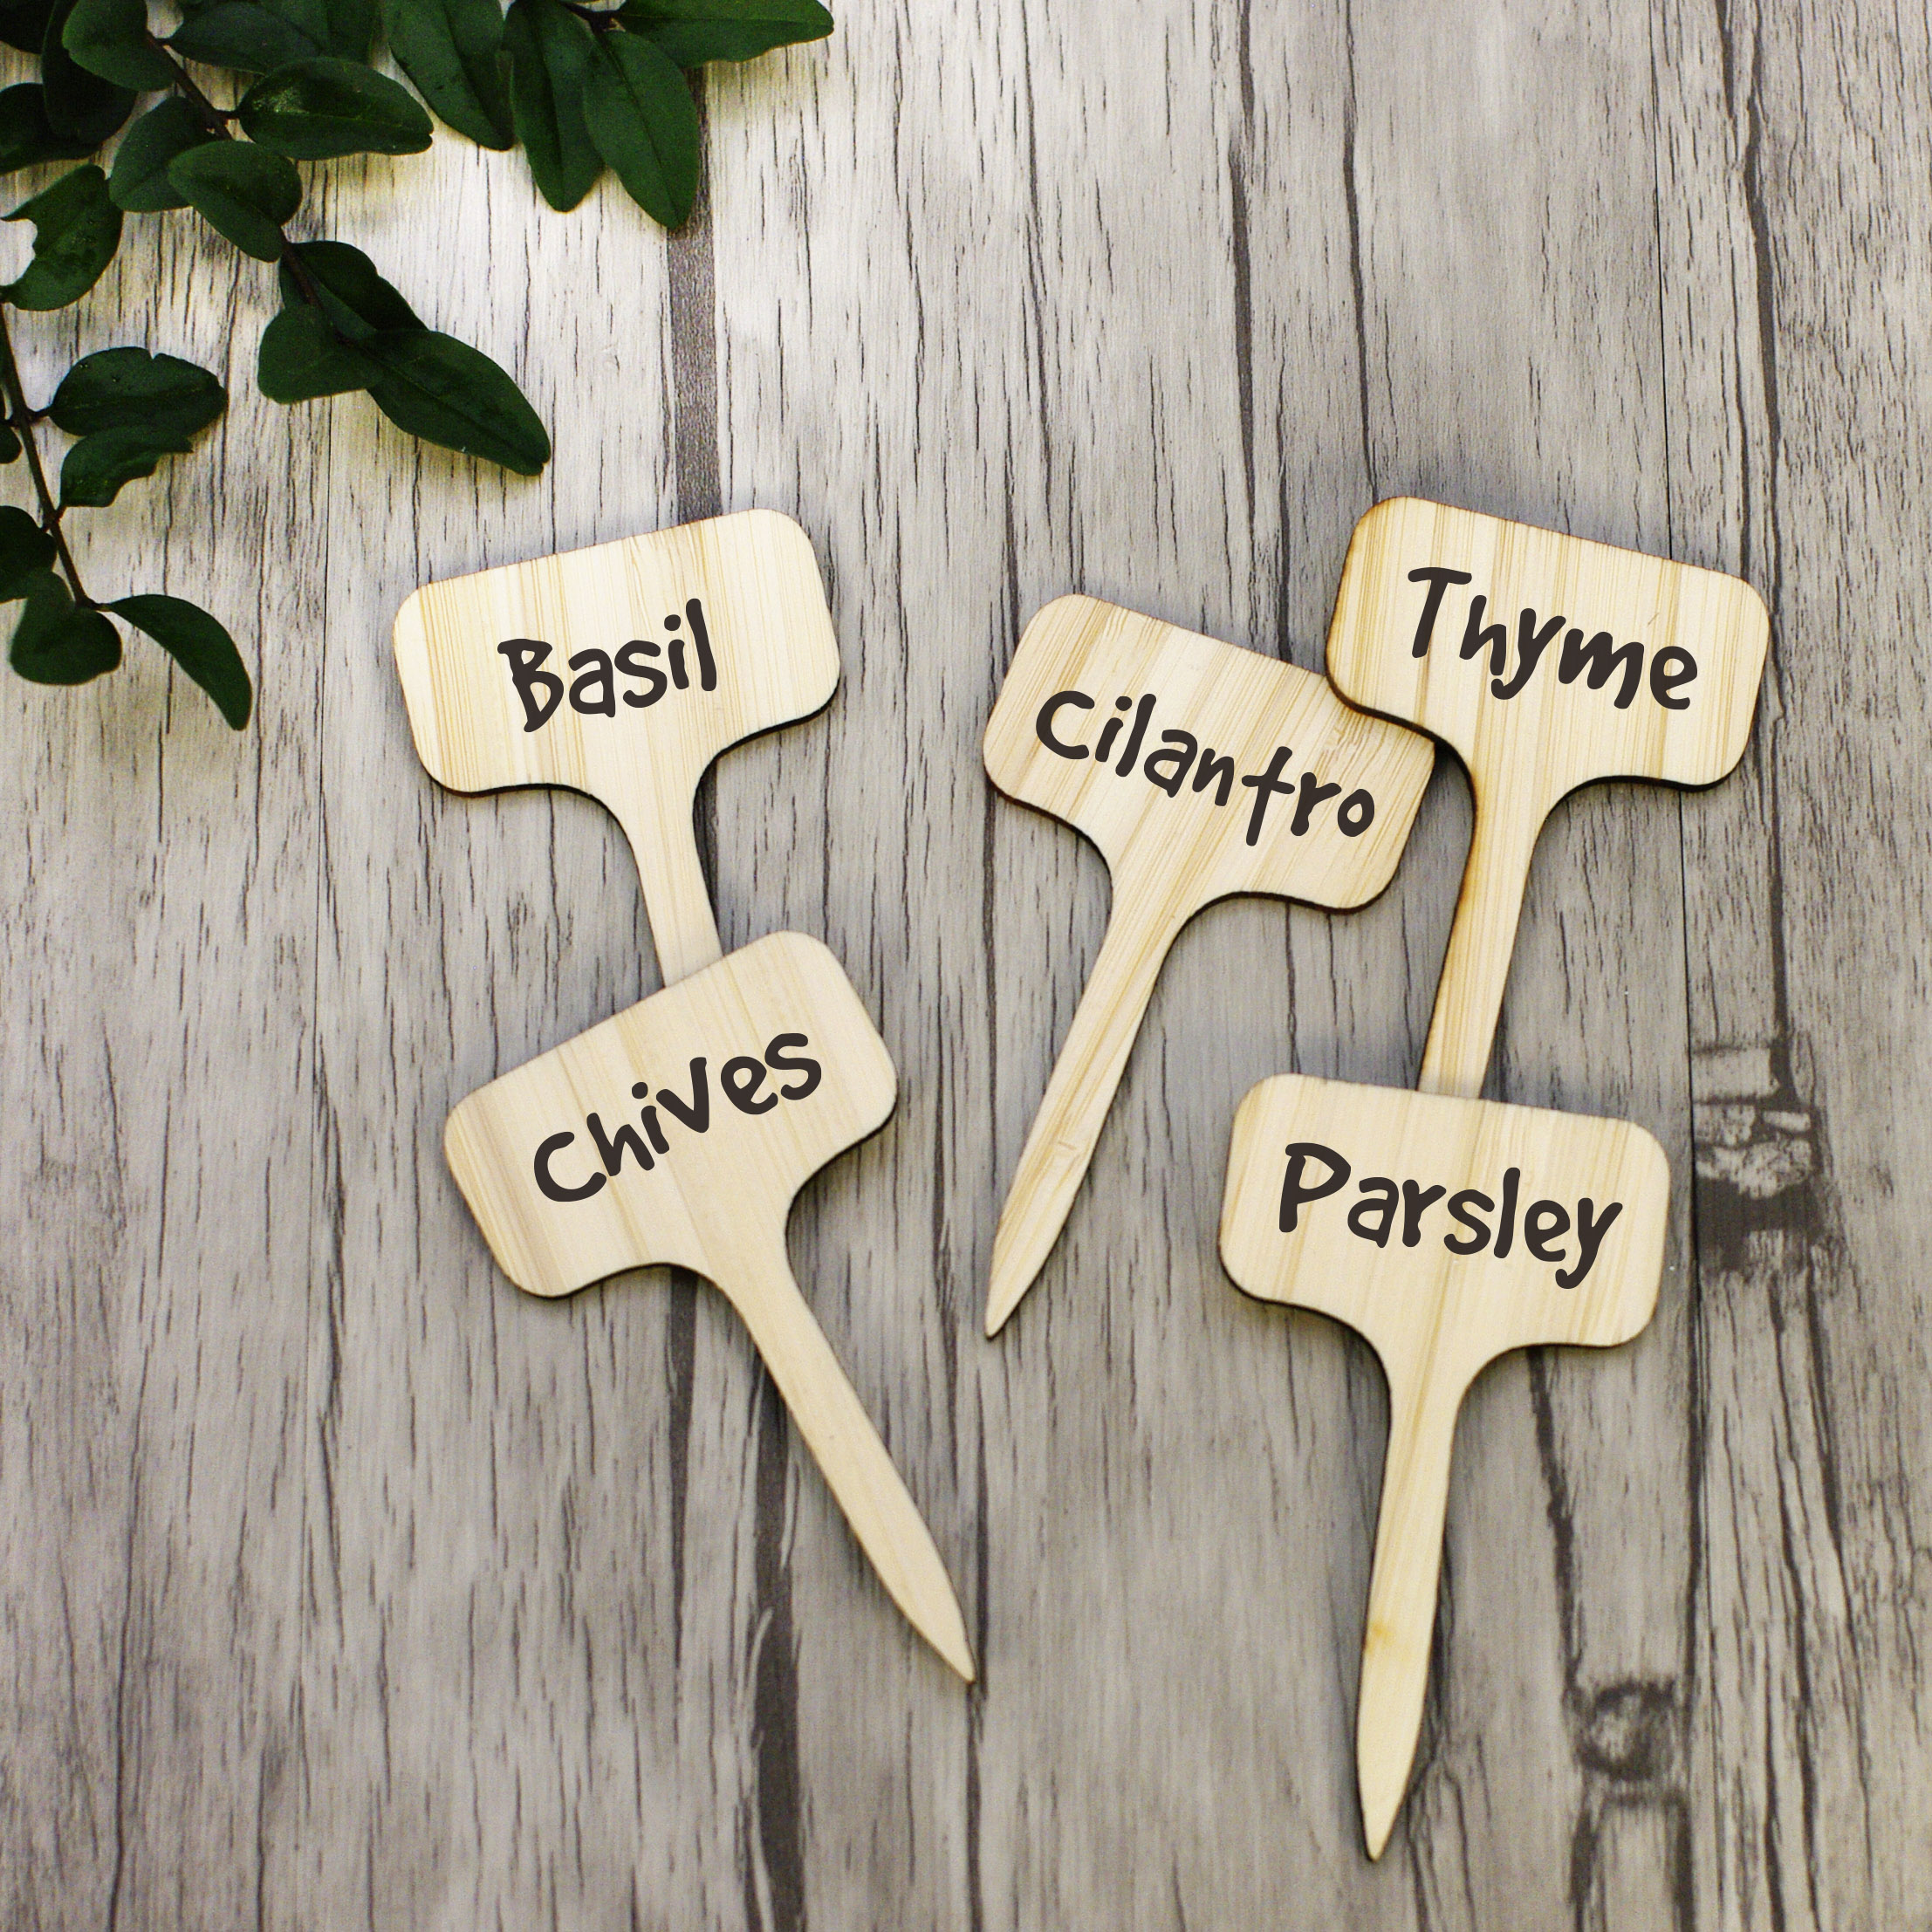 3 size T-Type Bamboo Plant Labels Eco-Friendly Wooden Plant Sign Tags Garden Markers for Seed Potted Herbs Flowers Tools  BL02 1